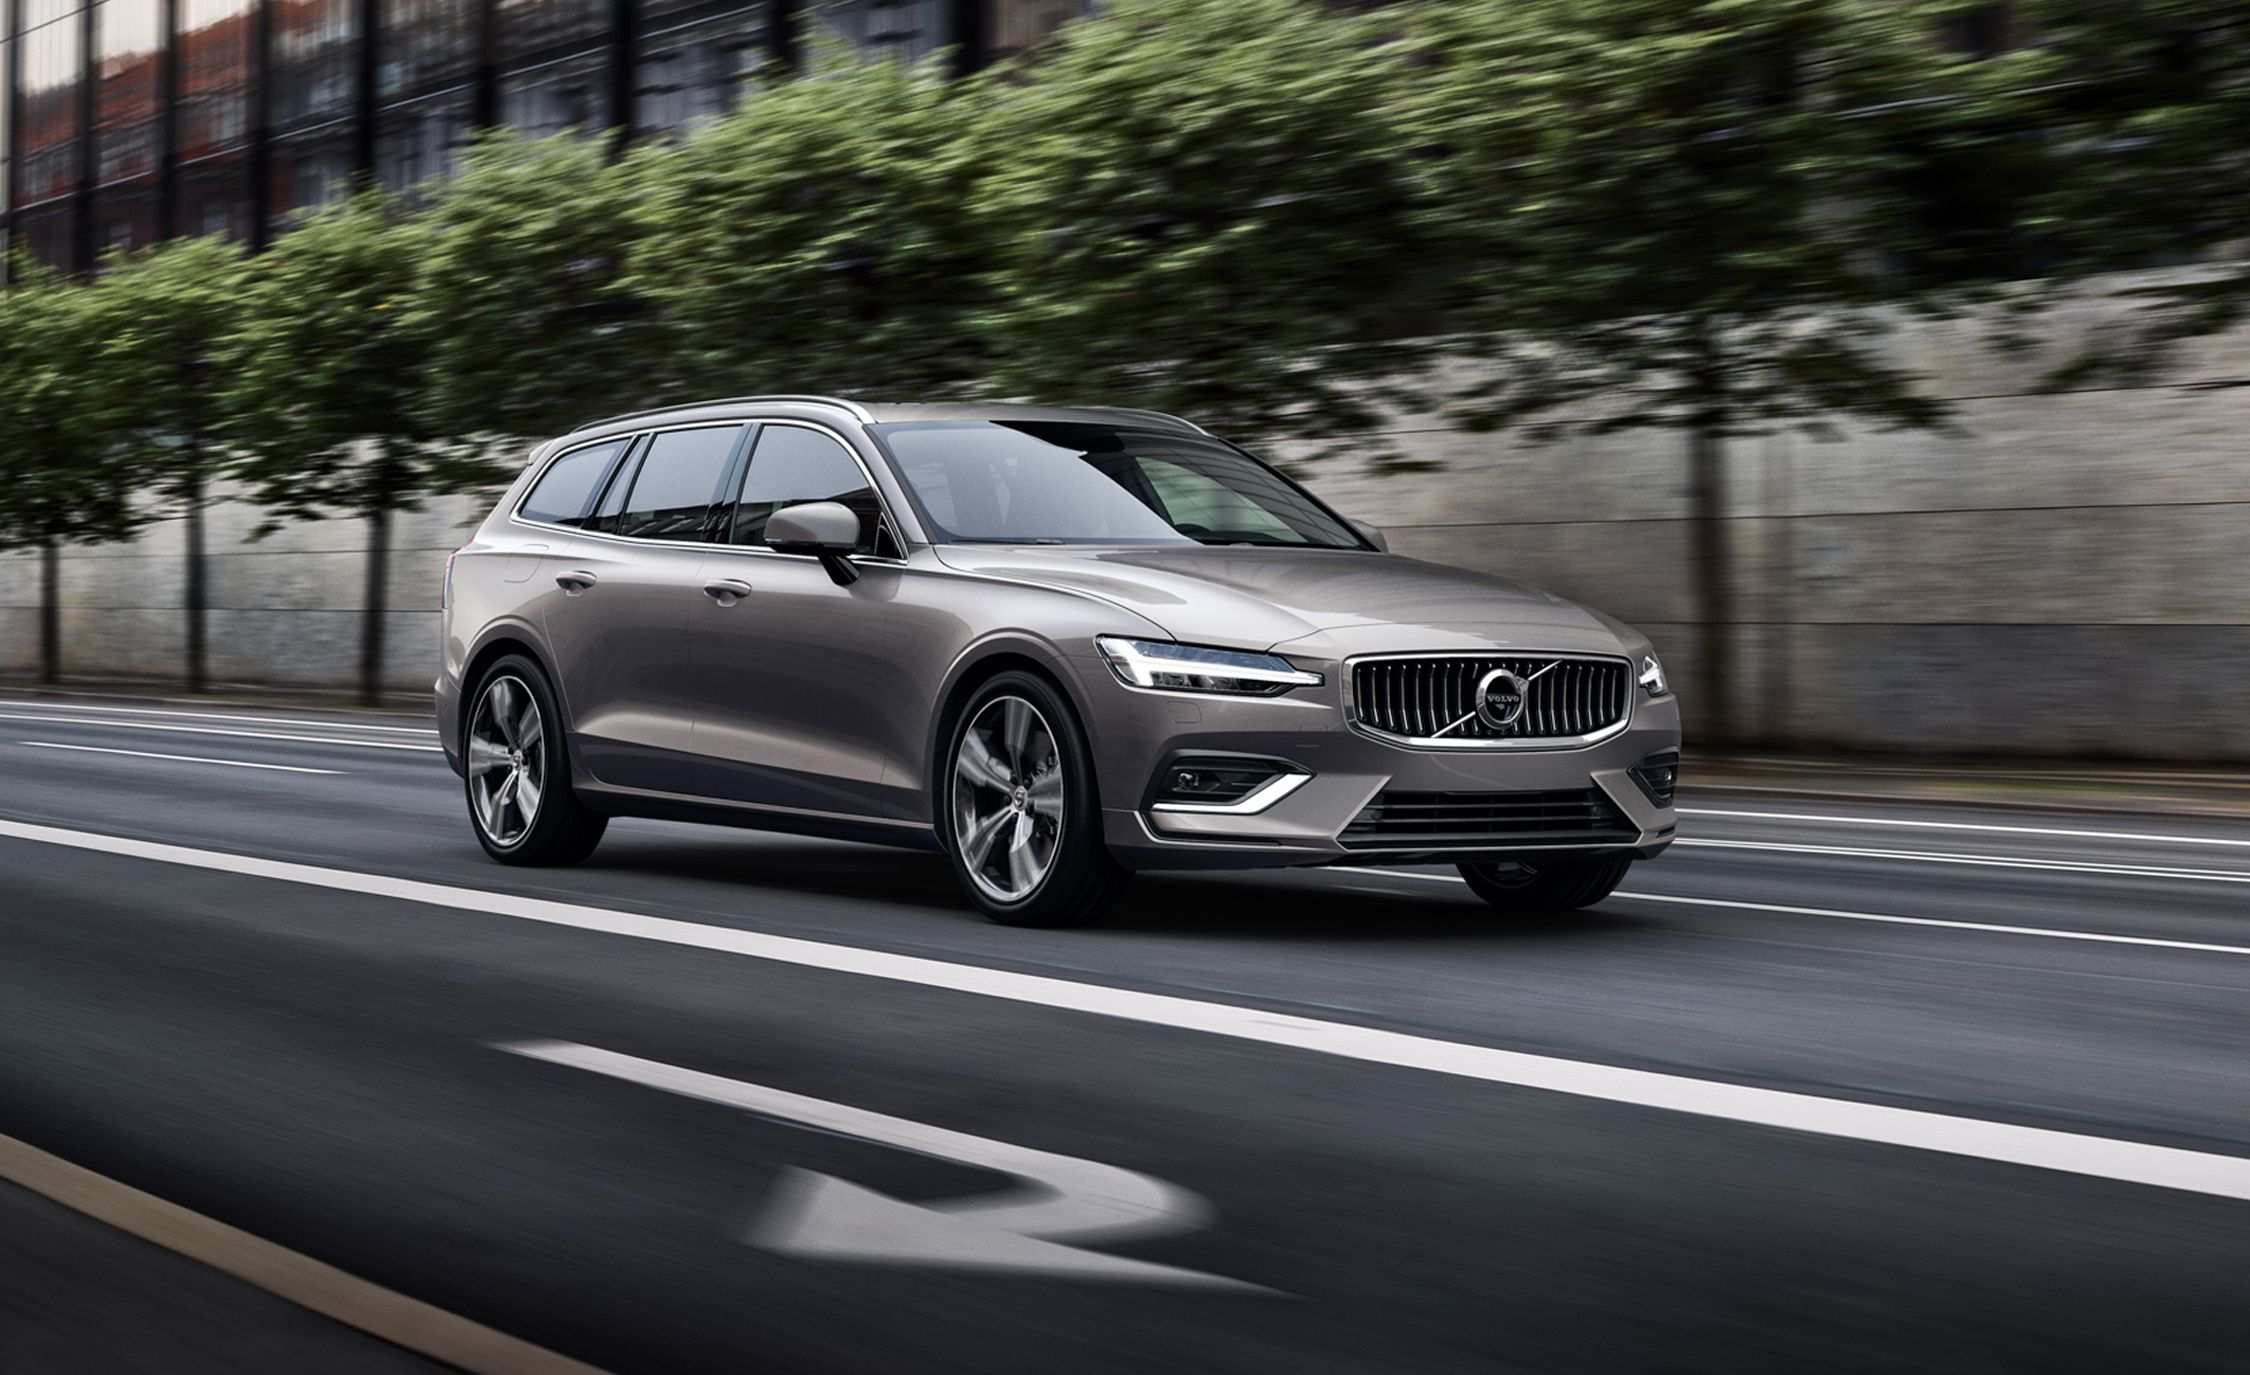 29 Best Review 2019 Volvo S60 Gas Mileage Spy Shoot Specs by 2019 Volvo S60 Gas Mileage Spy Shoot